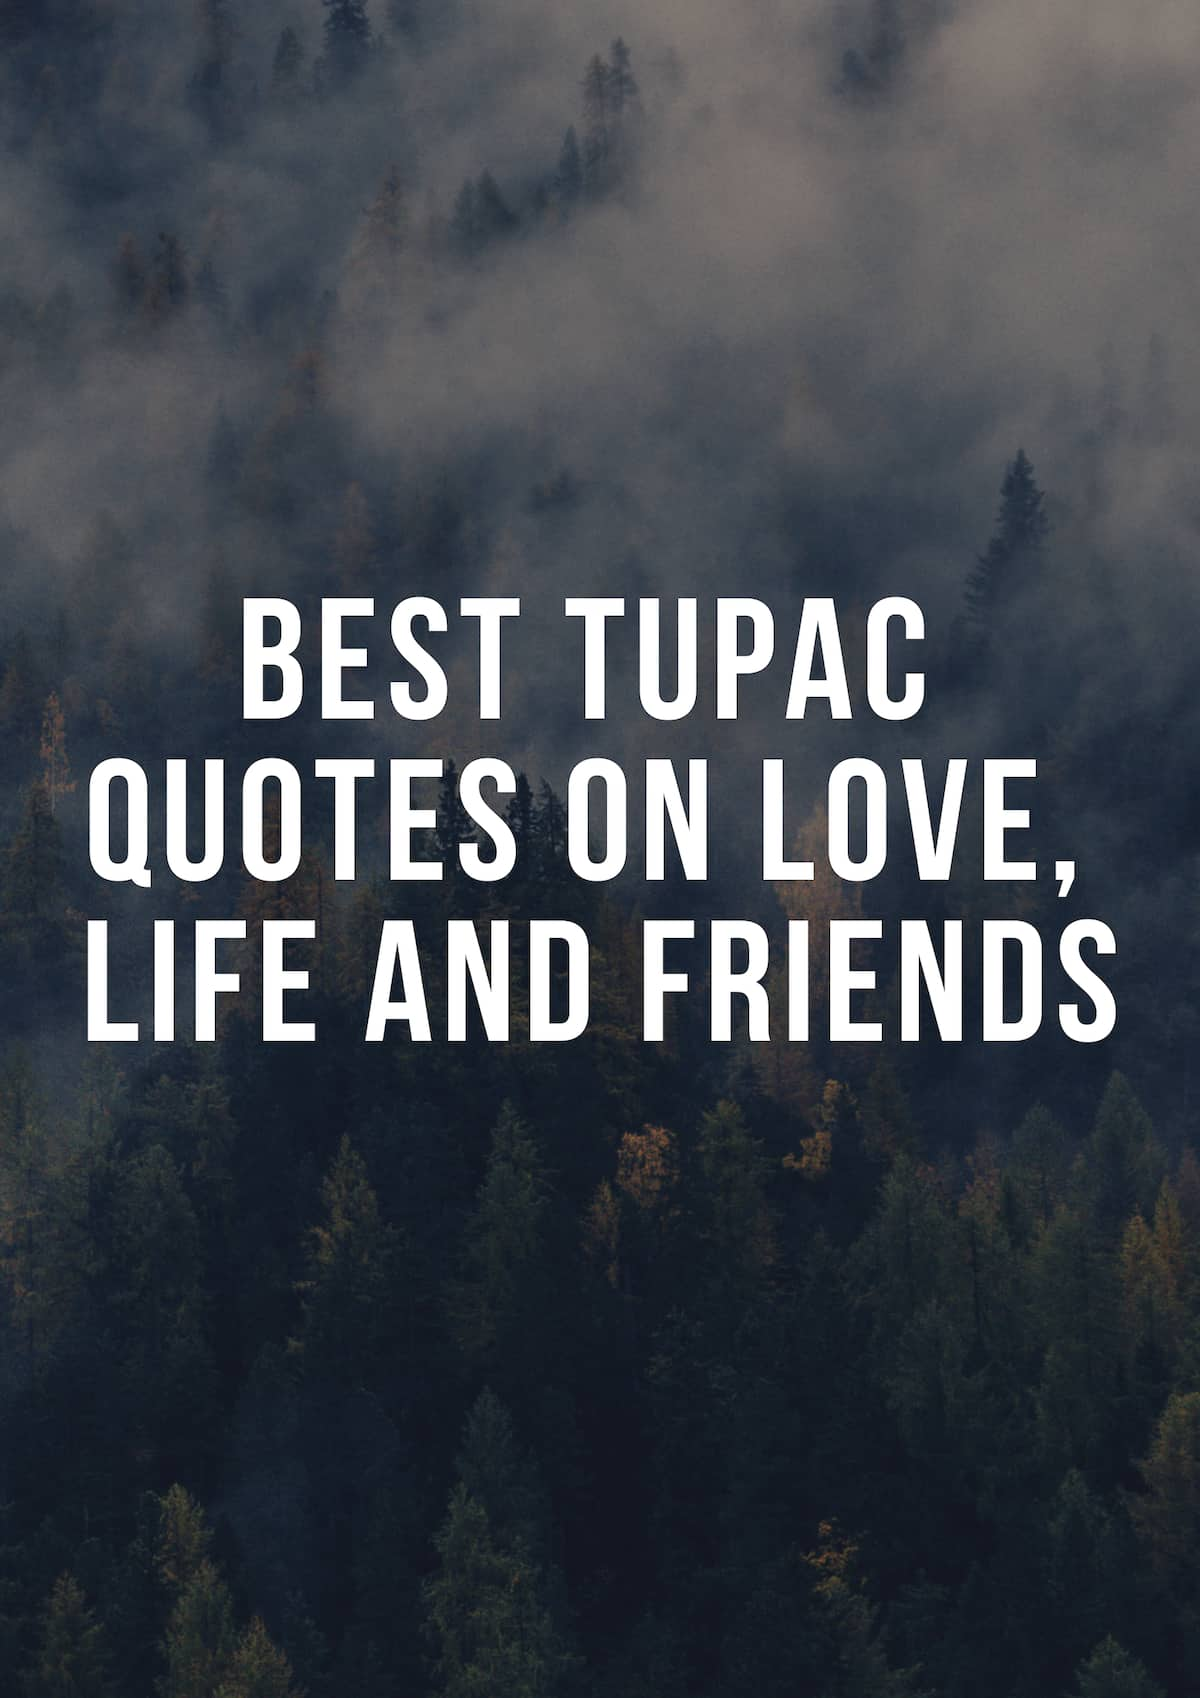 Best Tupac Quotes On Love Life And Friends Yen